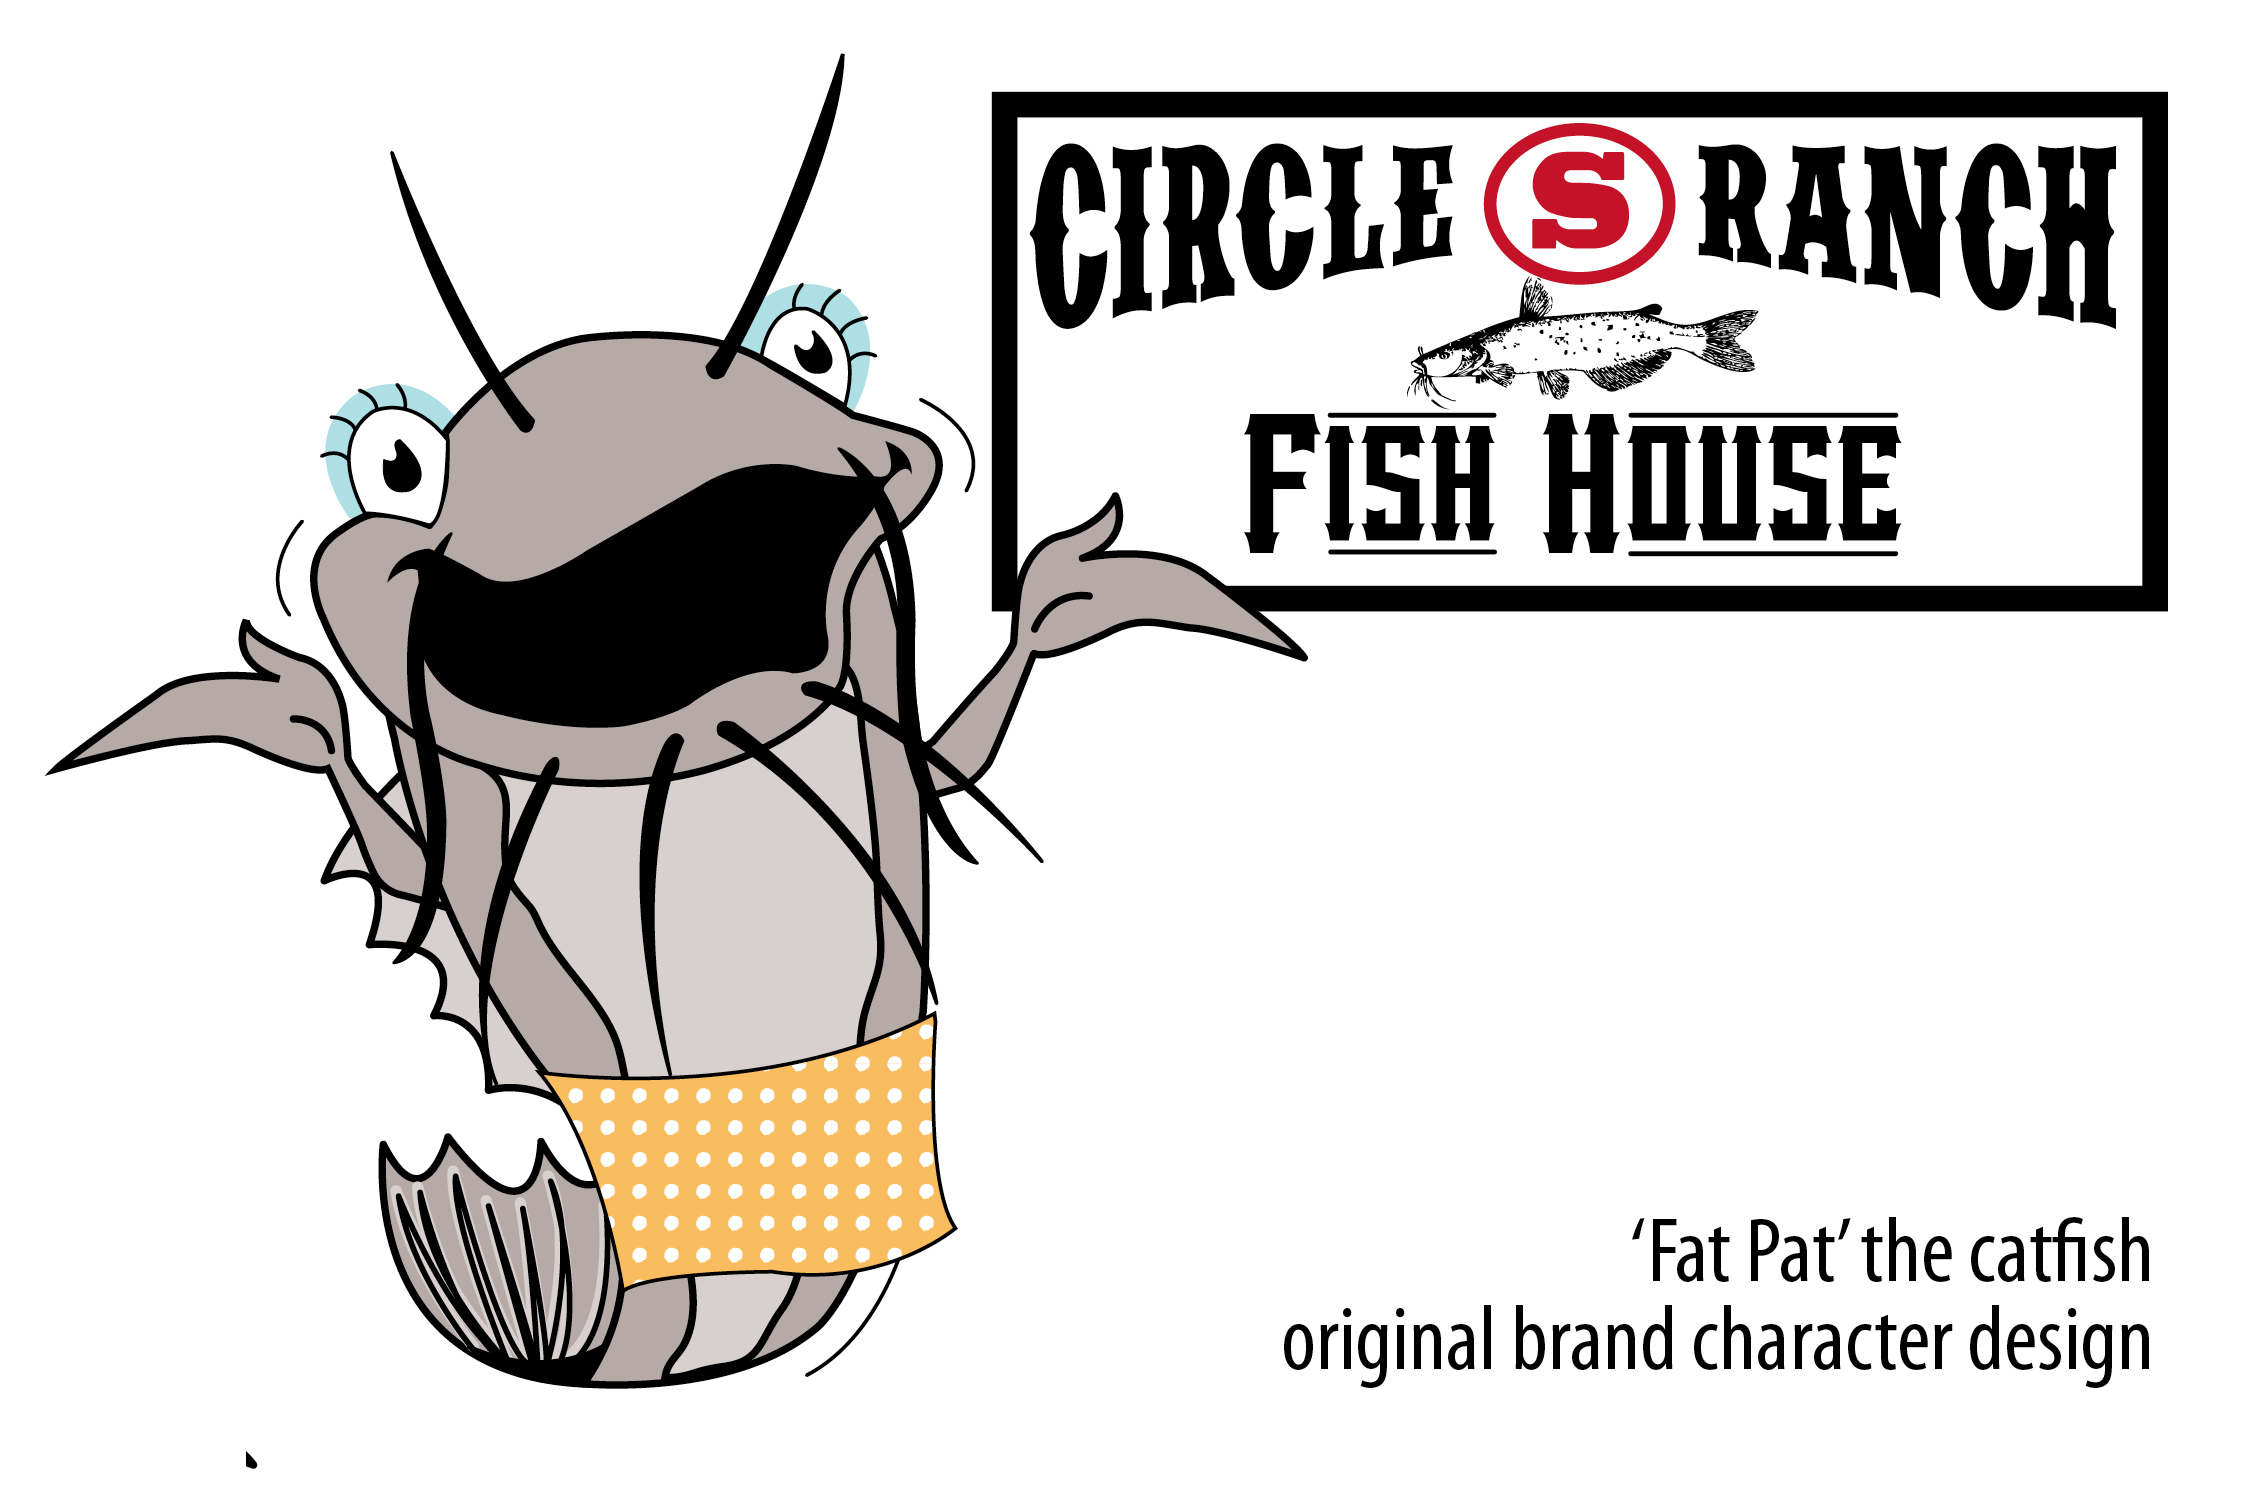 Circle S Ranch Fish House